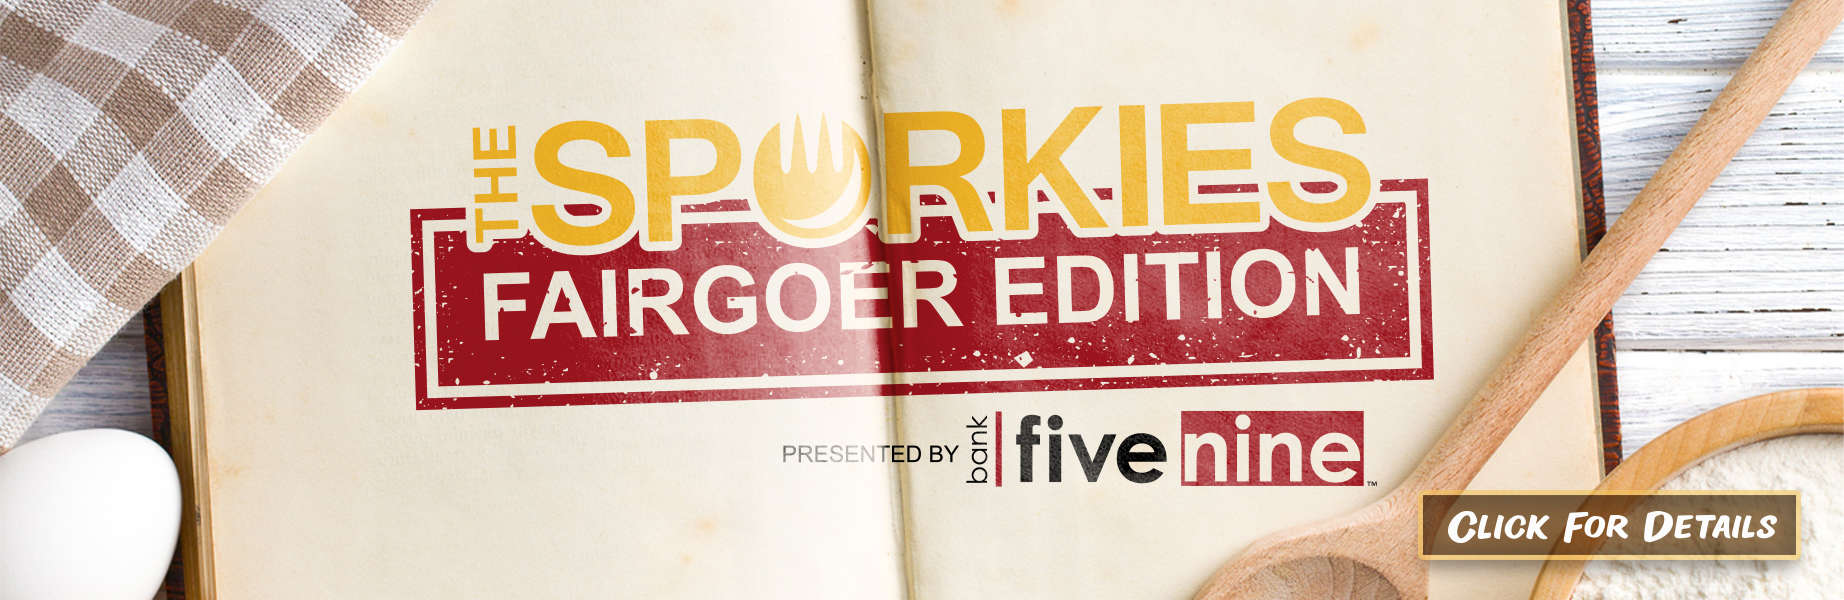 Sporkies Fairgoer Edition presented by Bank Five Nine - Click for Details